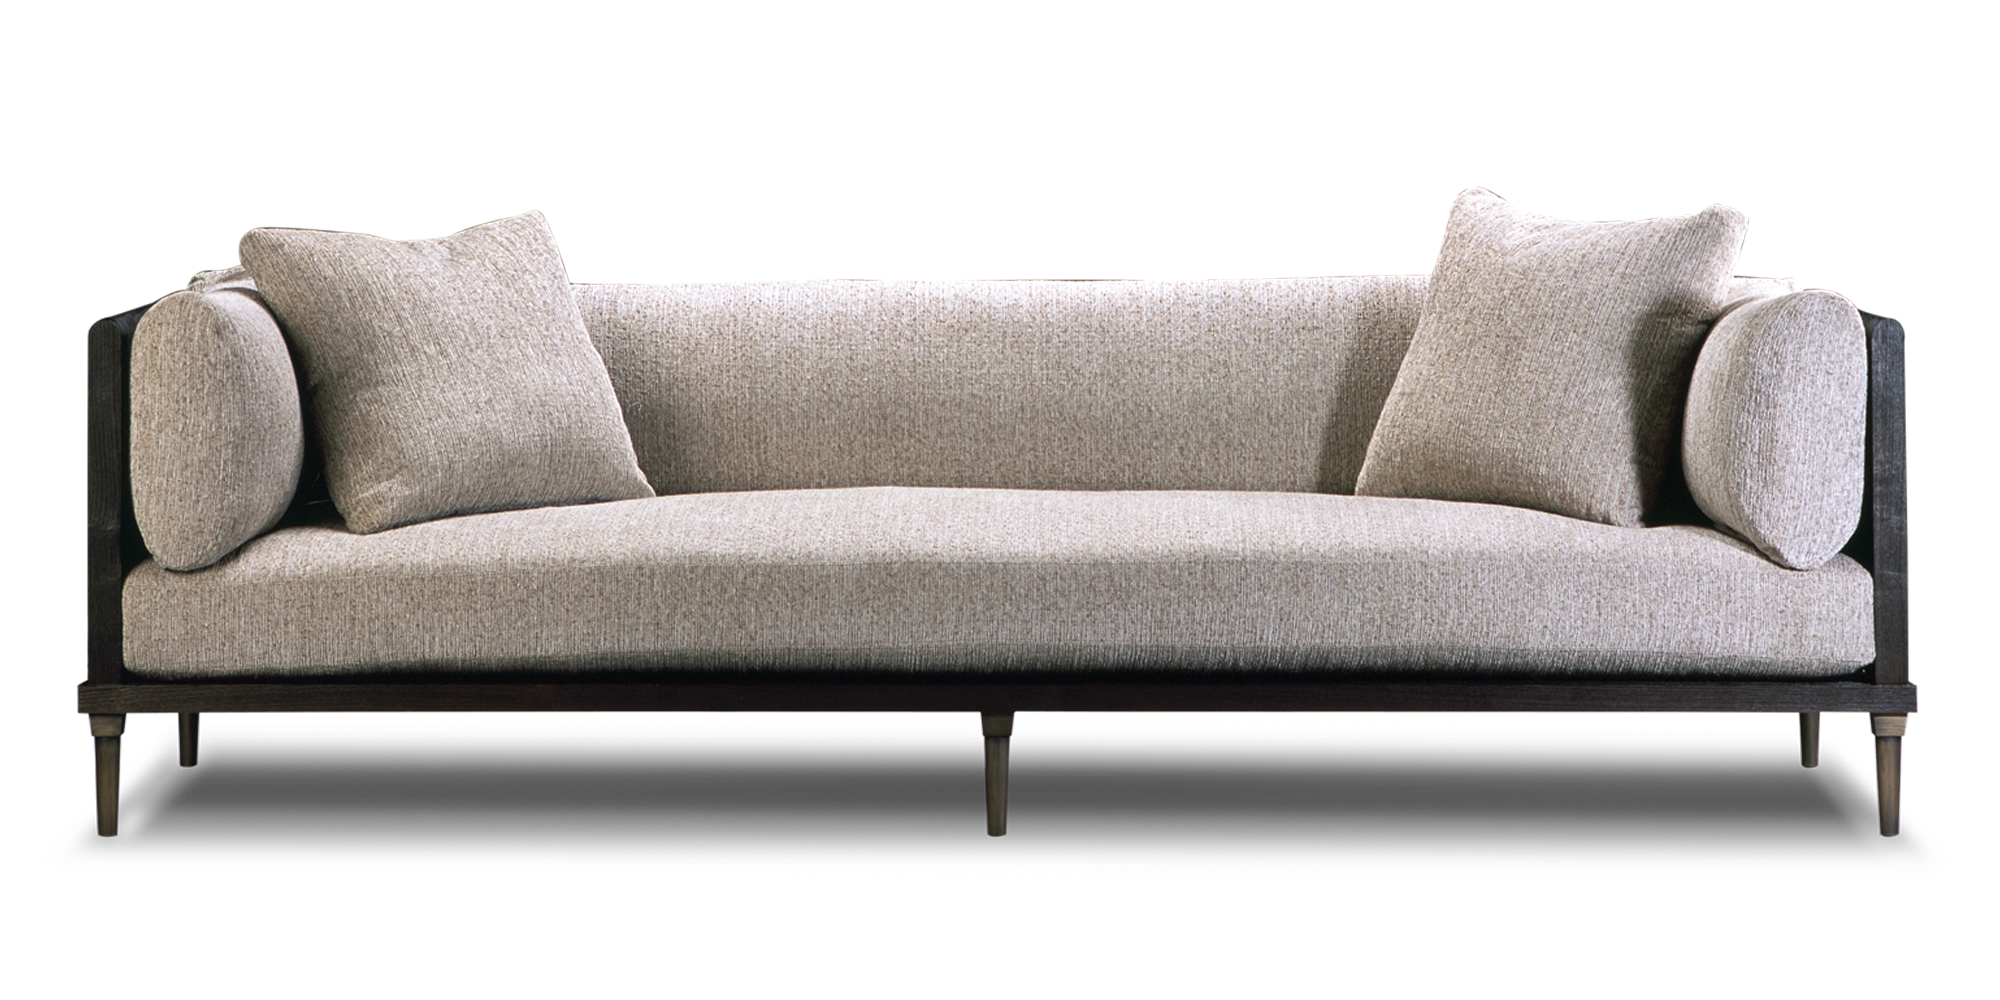 Chambord Sectional Sofa In Jiun Ho Inc Furniture Objects